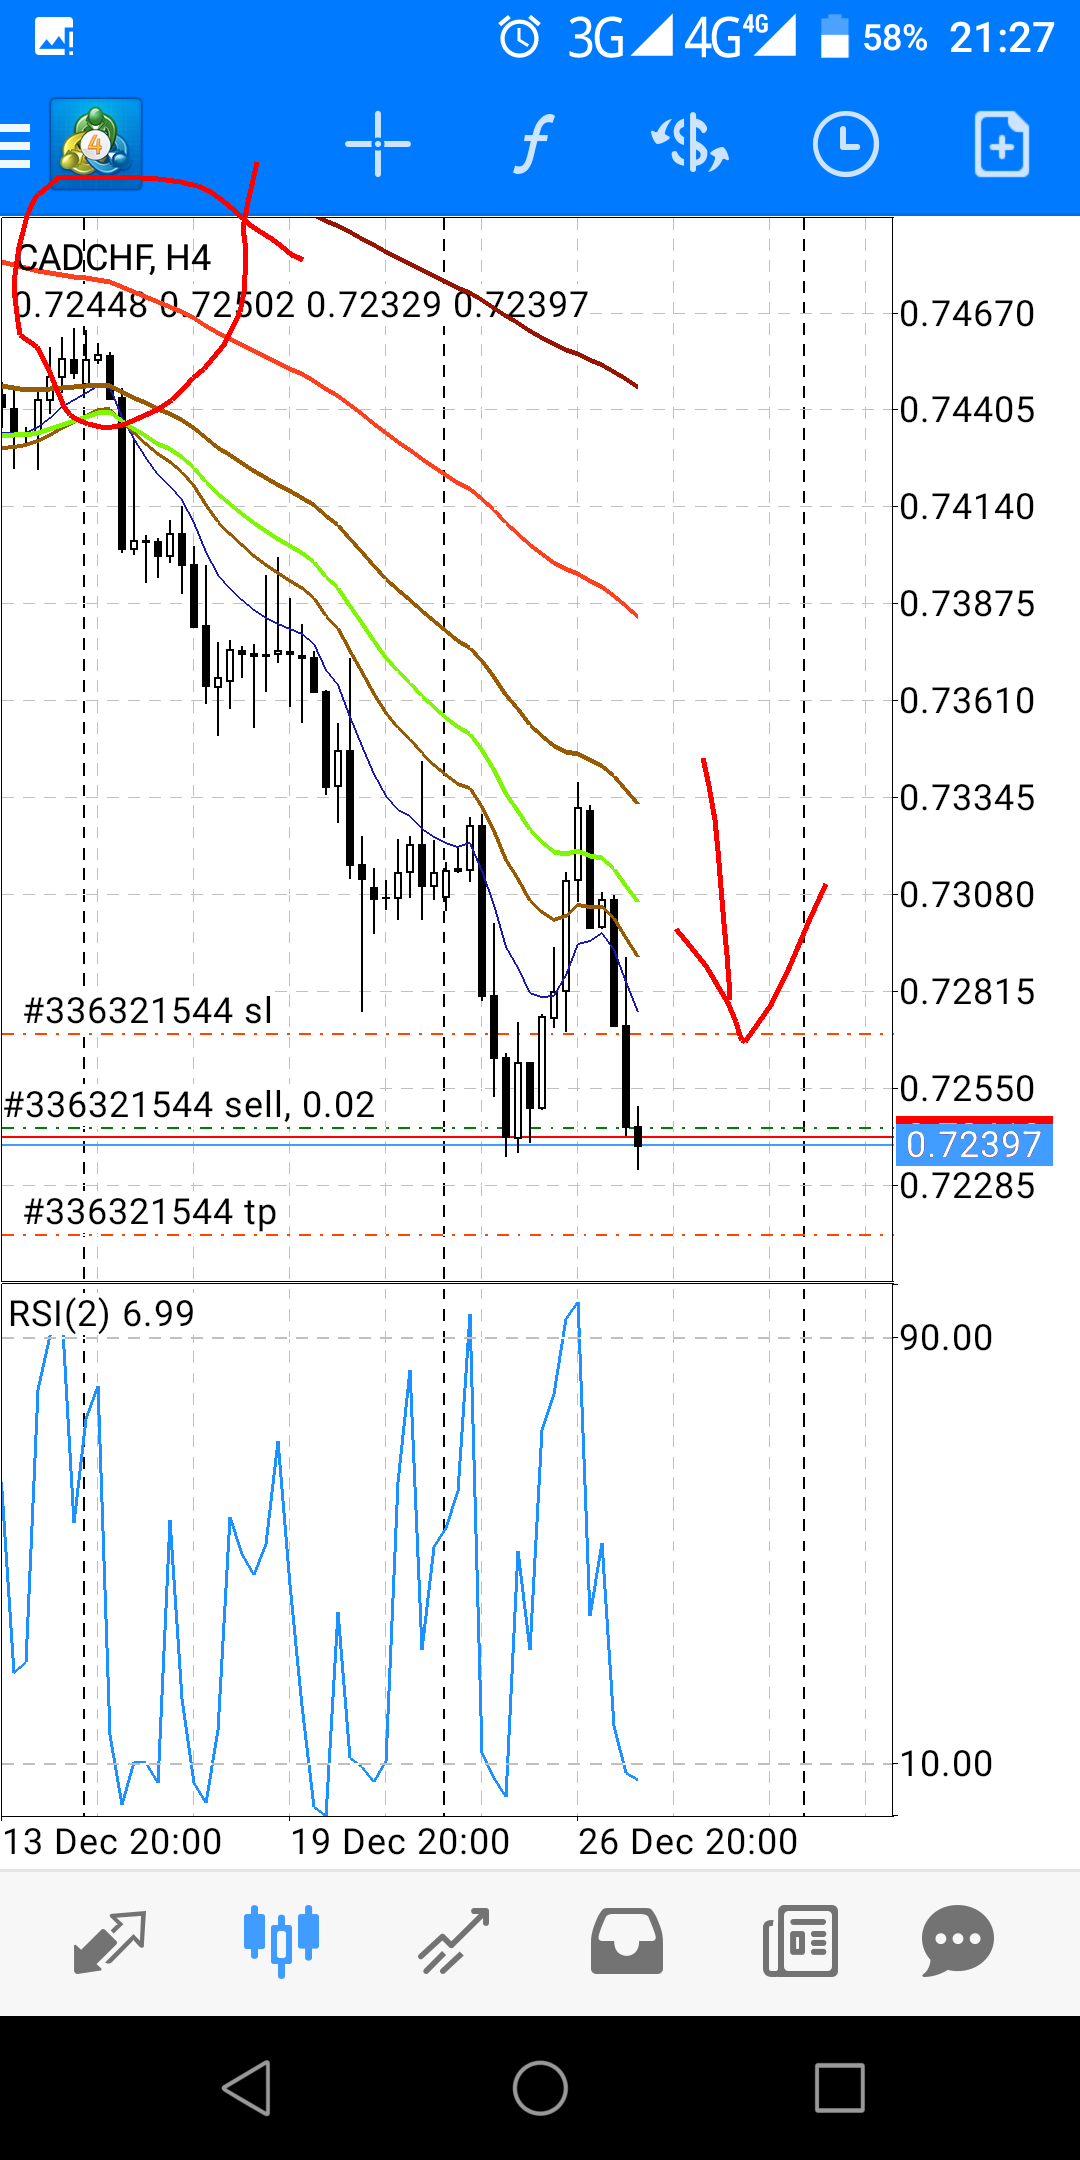 cadchf open posisi